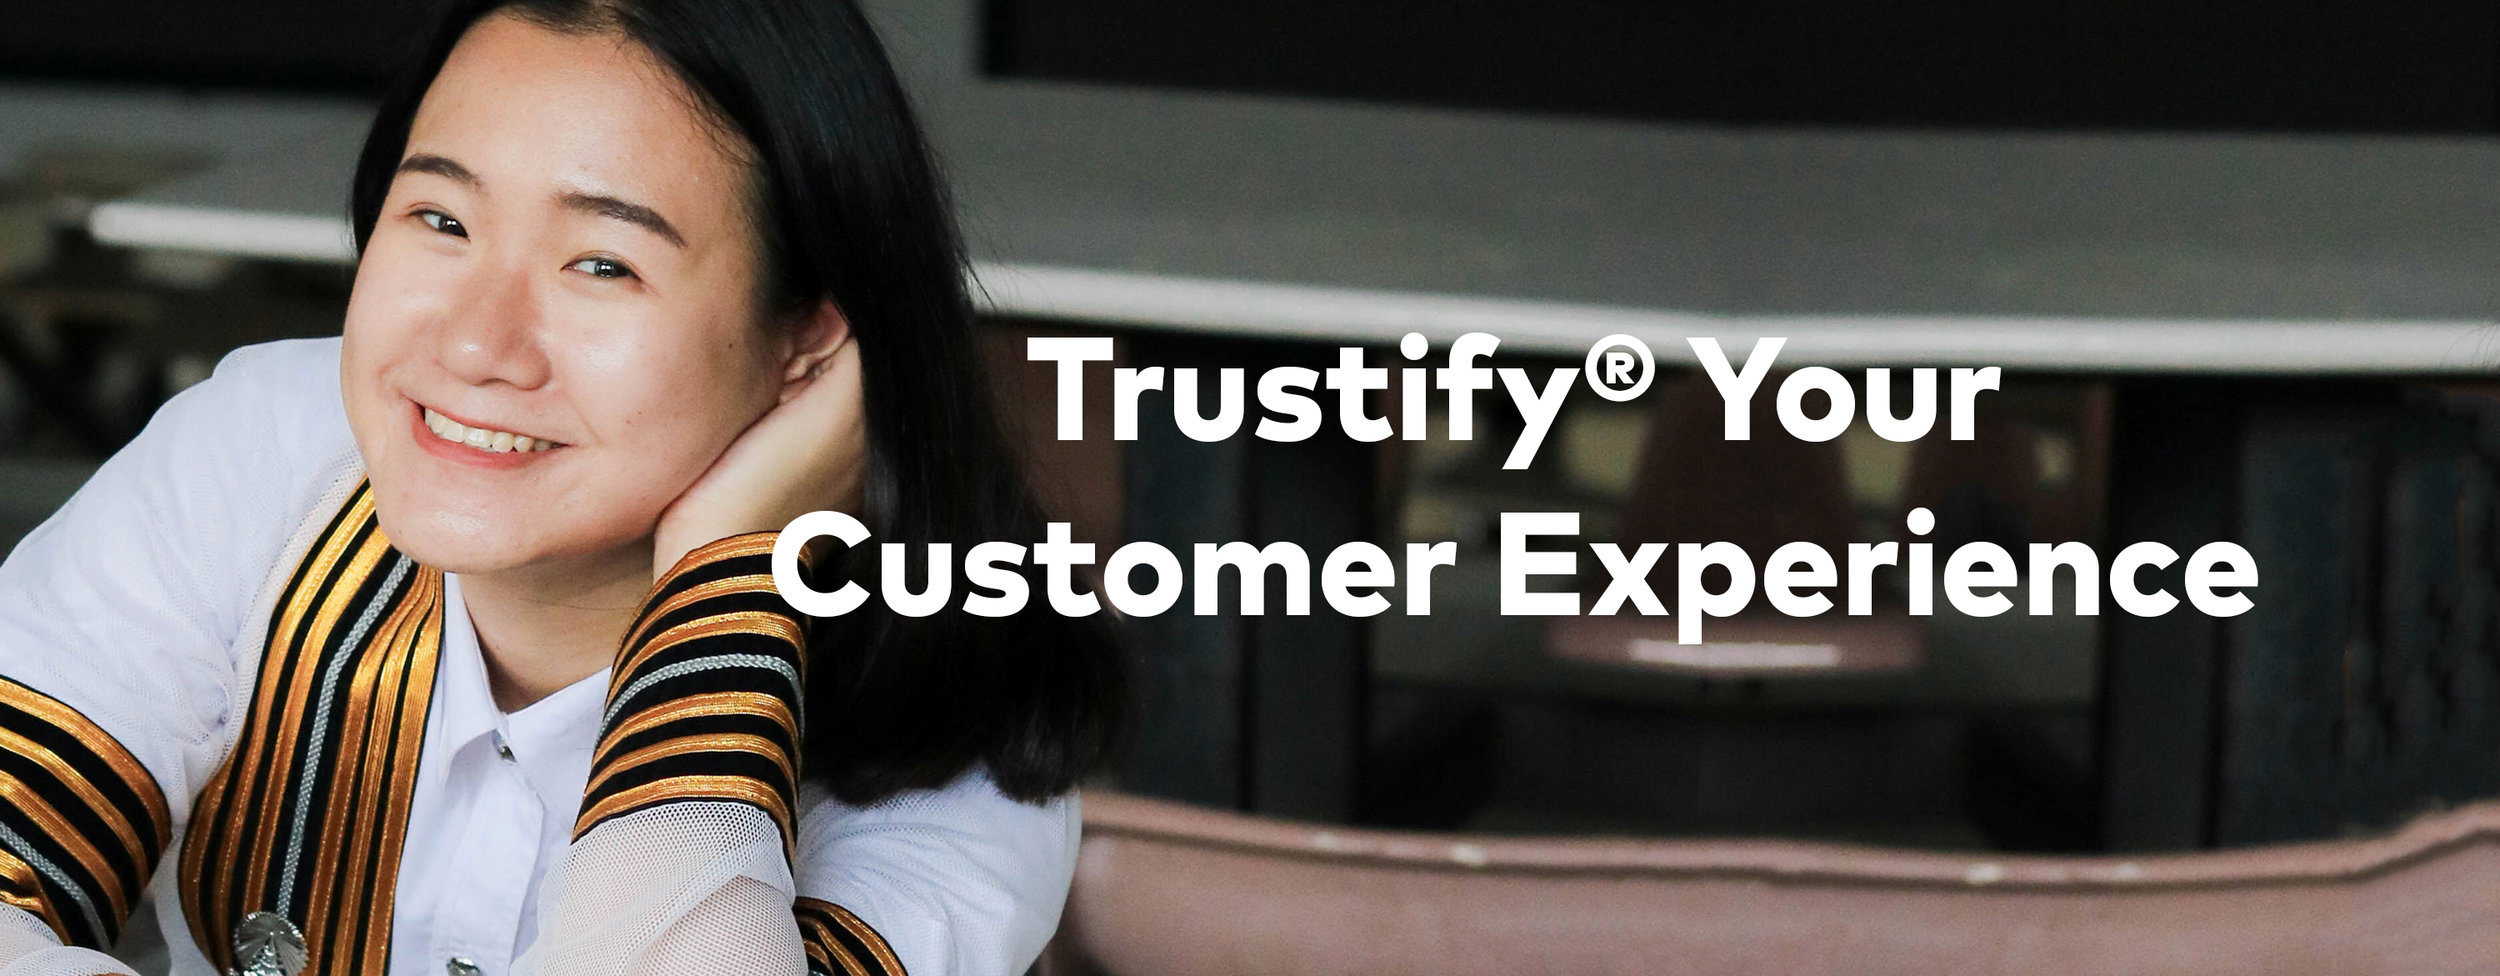 Mext_Consulting_Firm_Melbourne_Trust_Trustify_Your_Customer_Experience_Banner.jpg